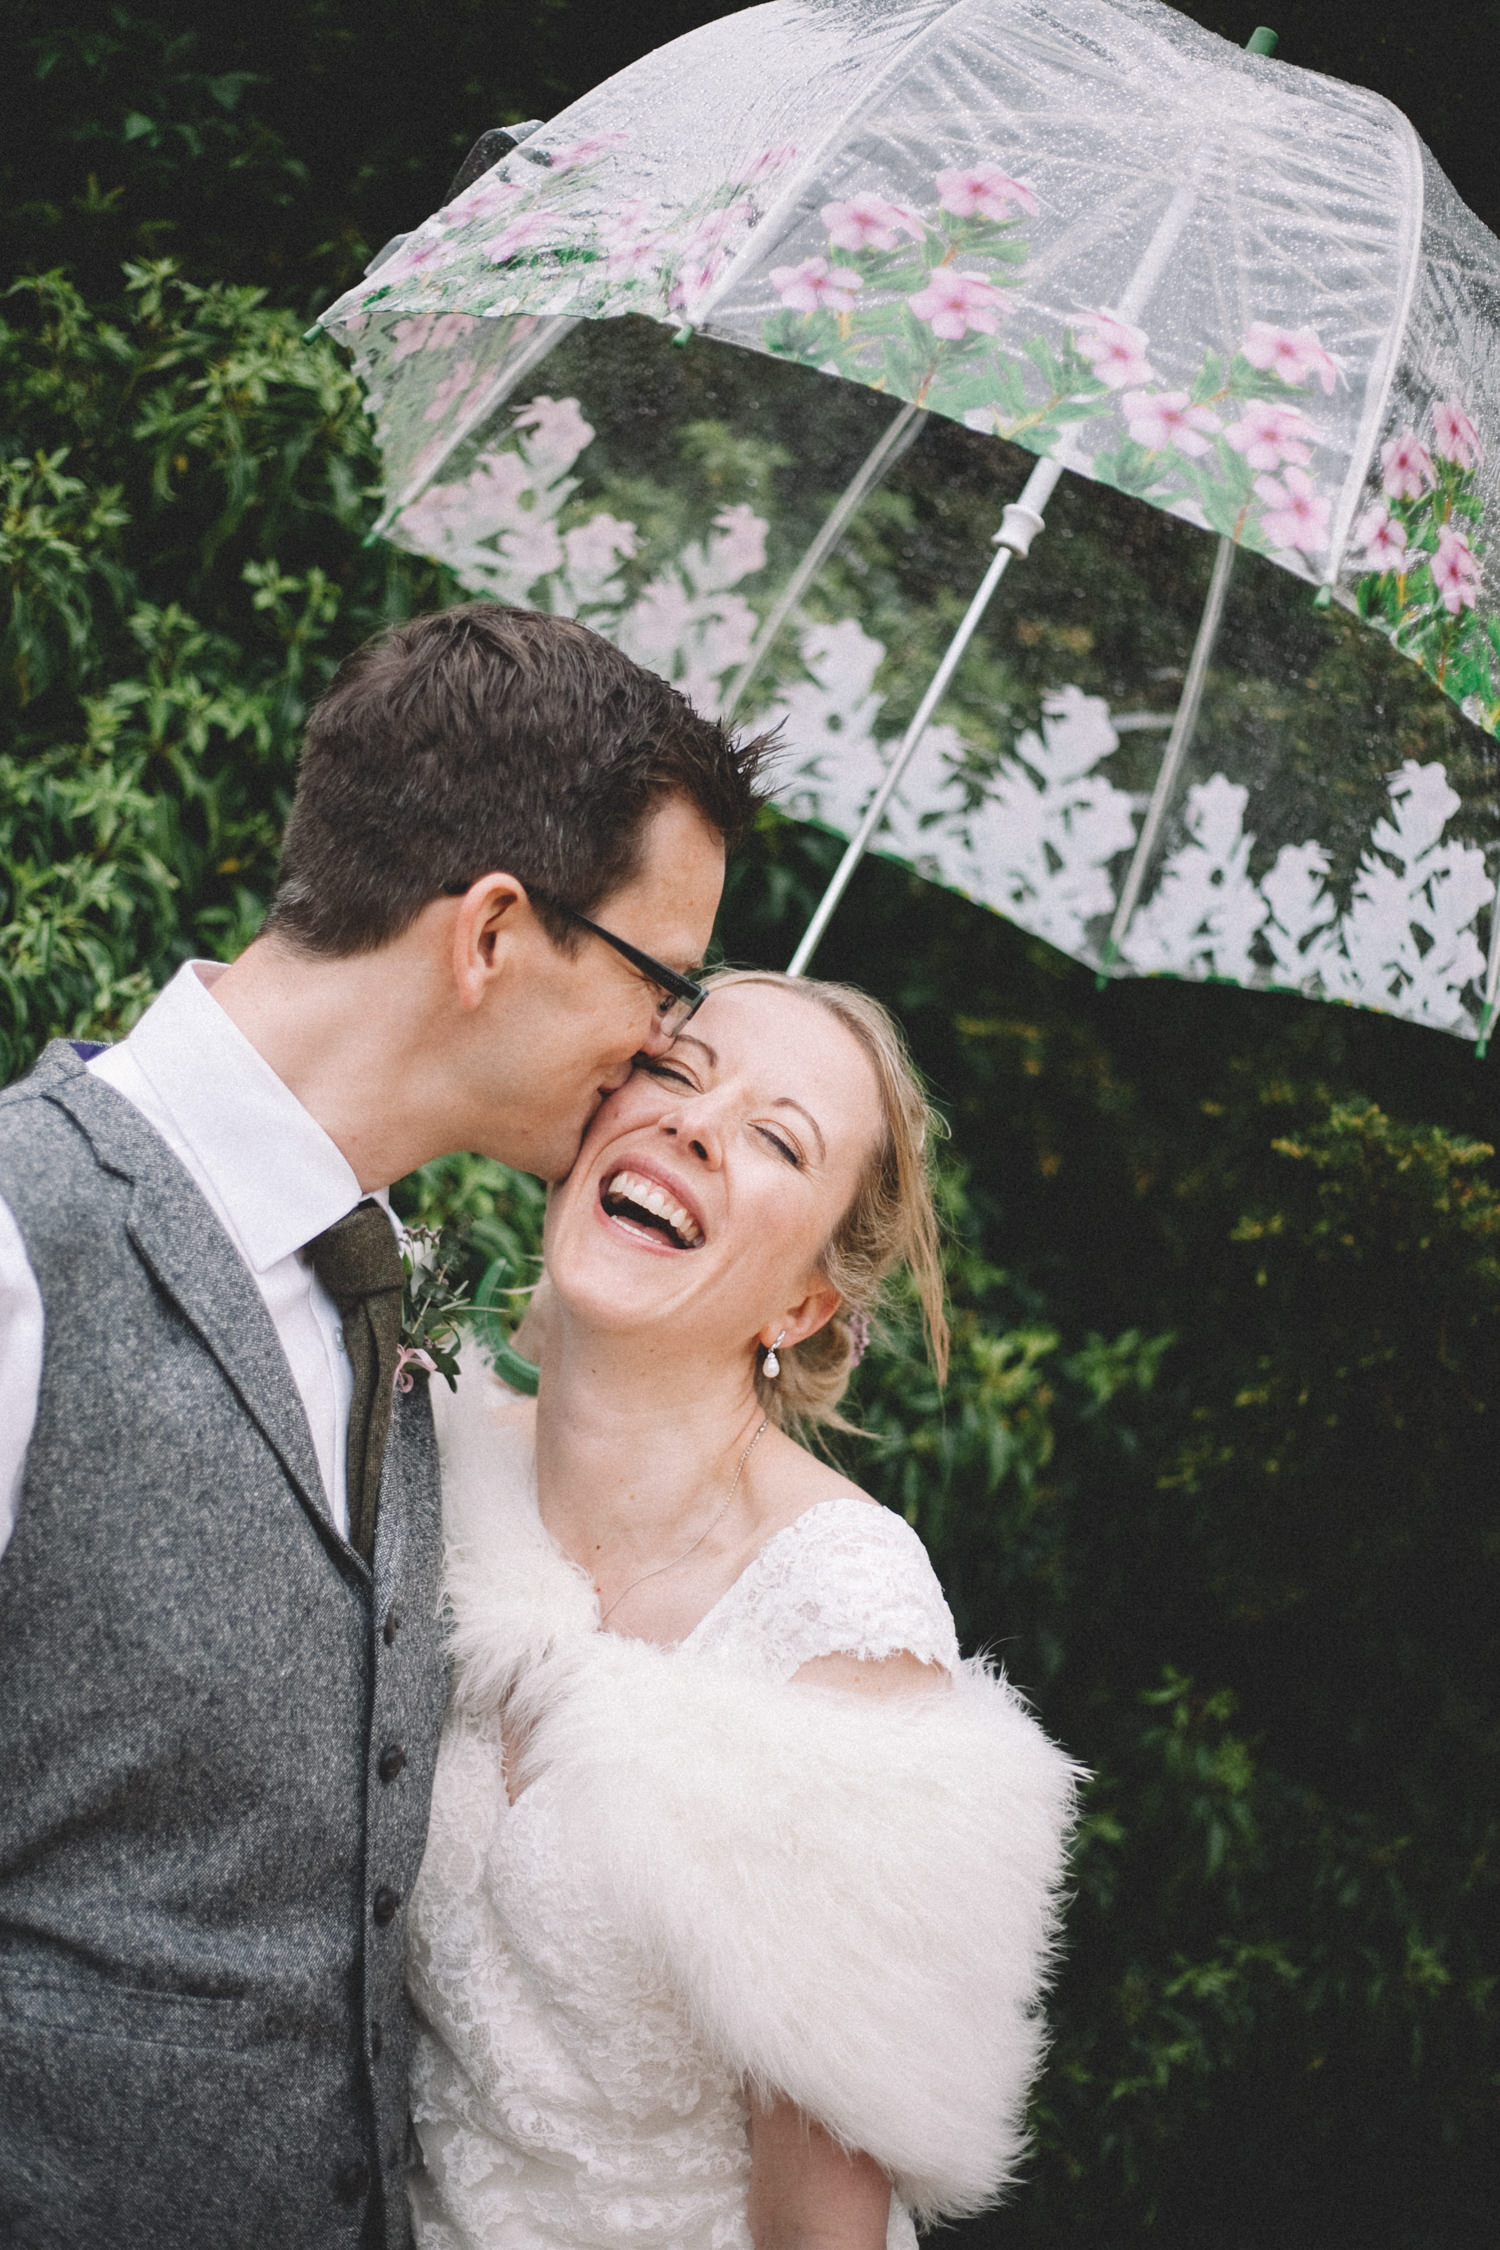 21st May 2016. Jenny and George get married in Buckland, Oxfordshire.